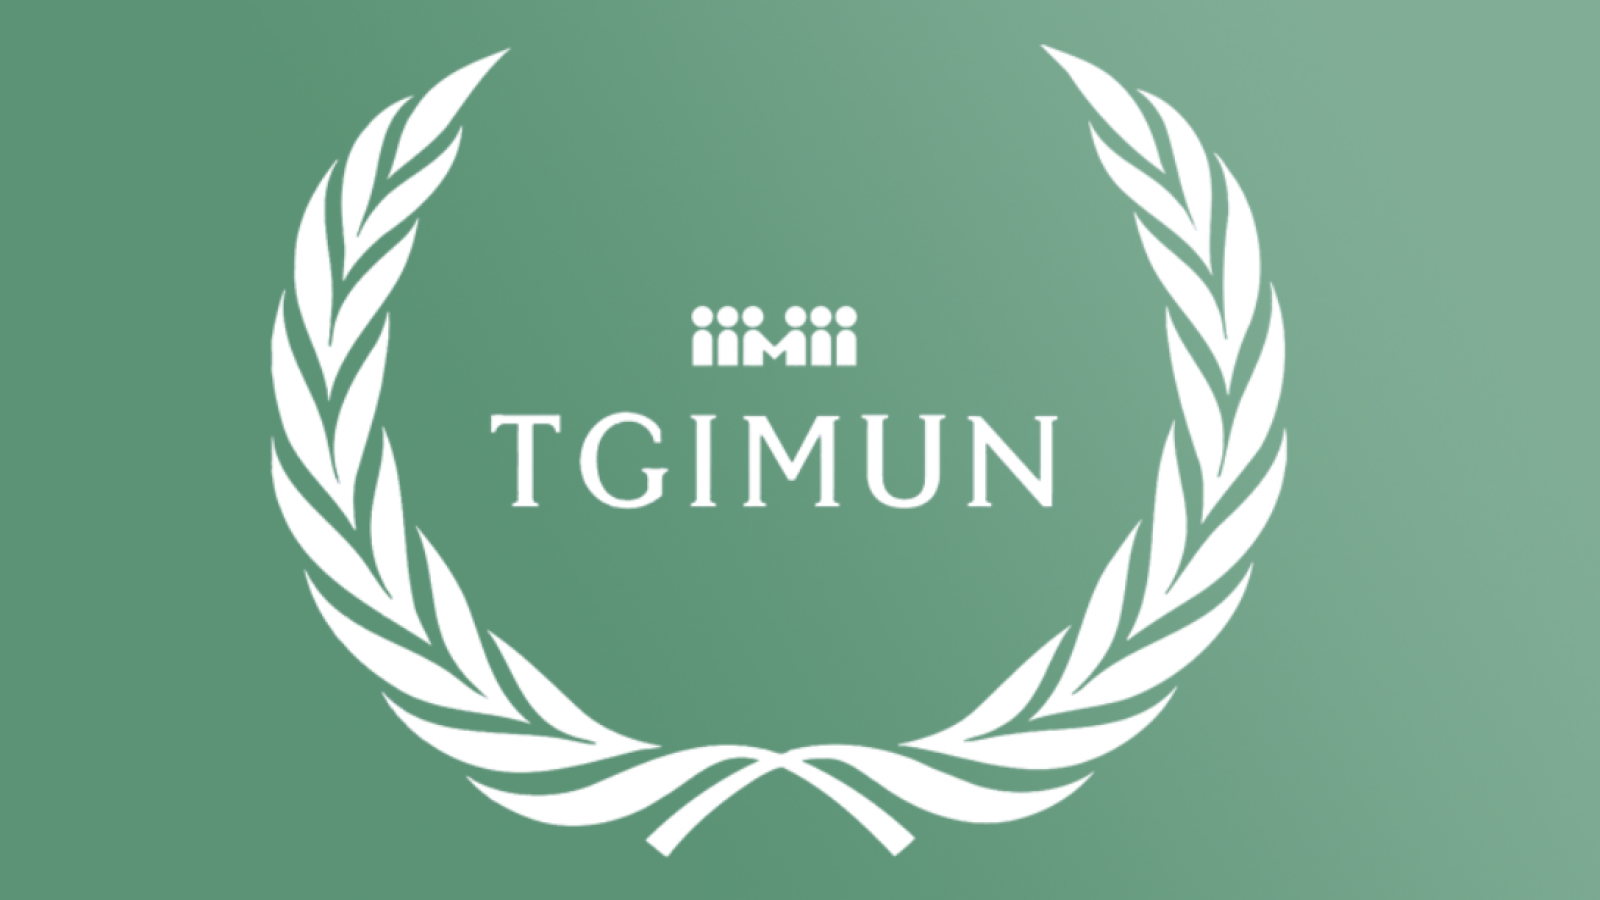 TGIMUN invites high school students to its second conference